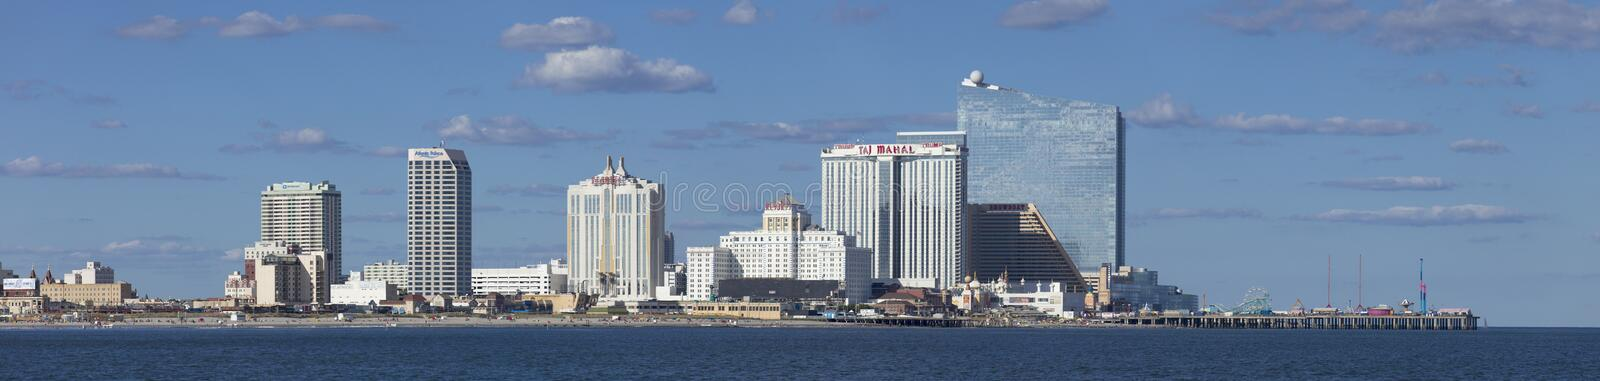 Vista panorâmica de Atlantic City, New-jersey do oceano fotos de stock